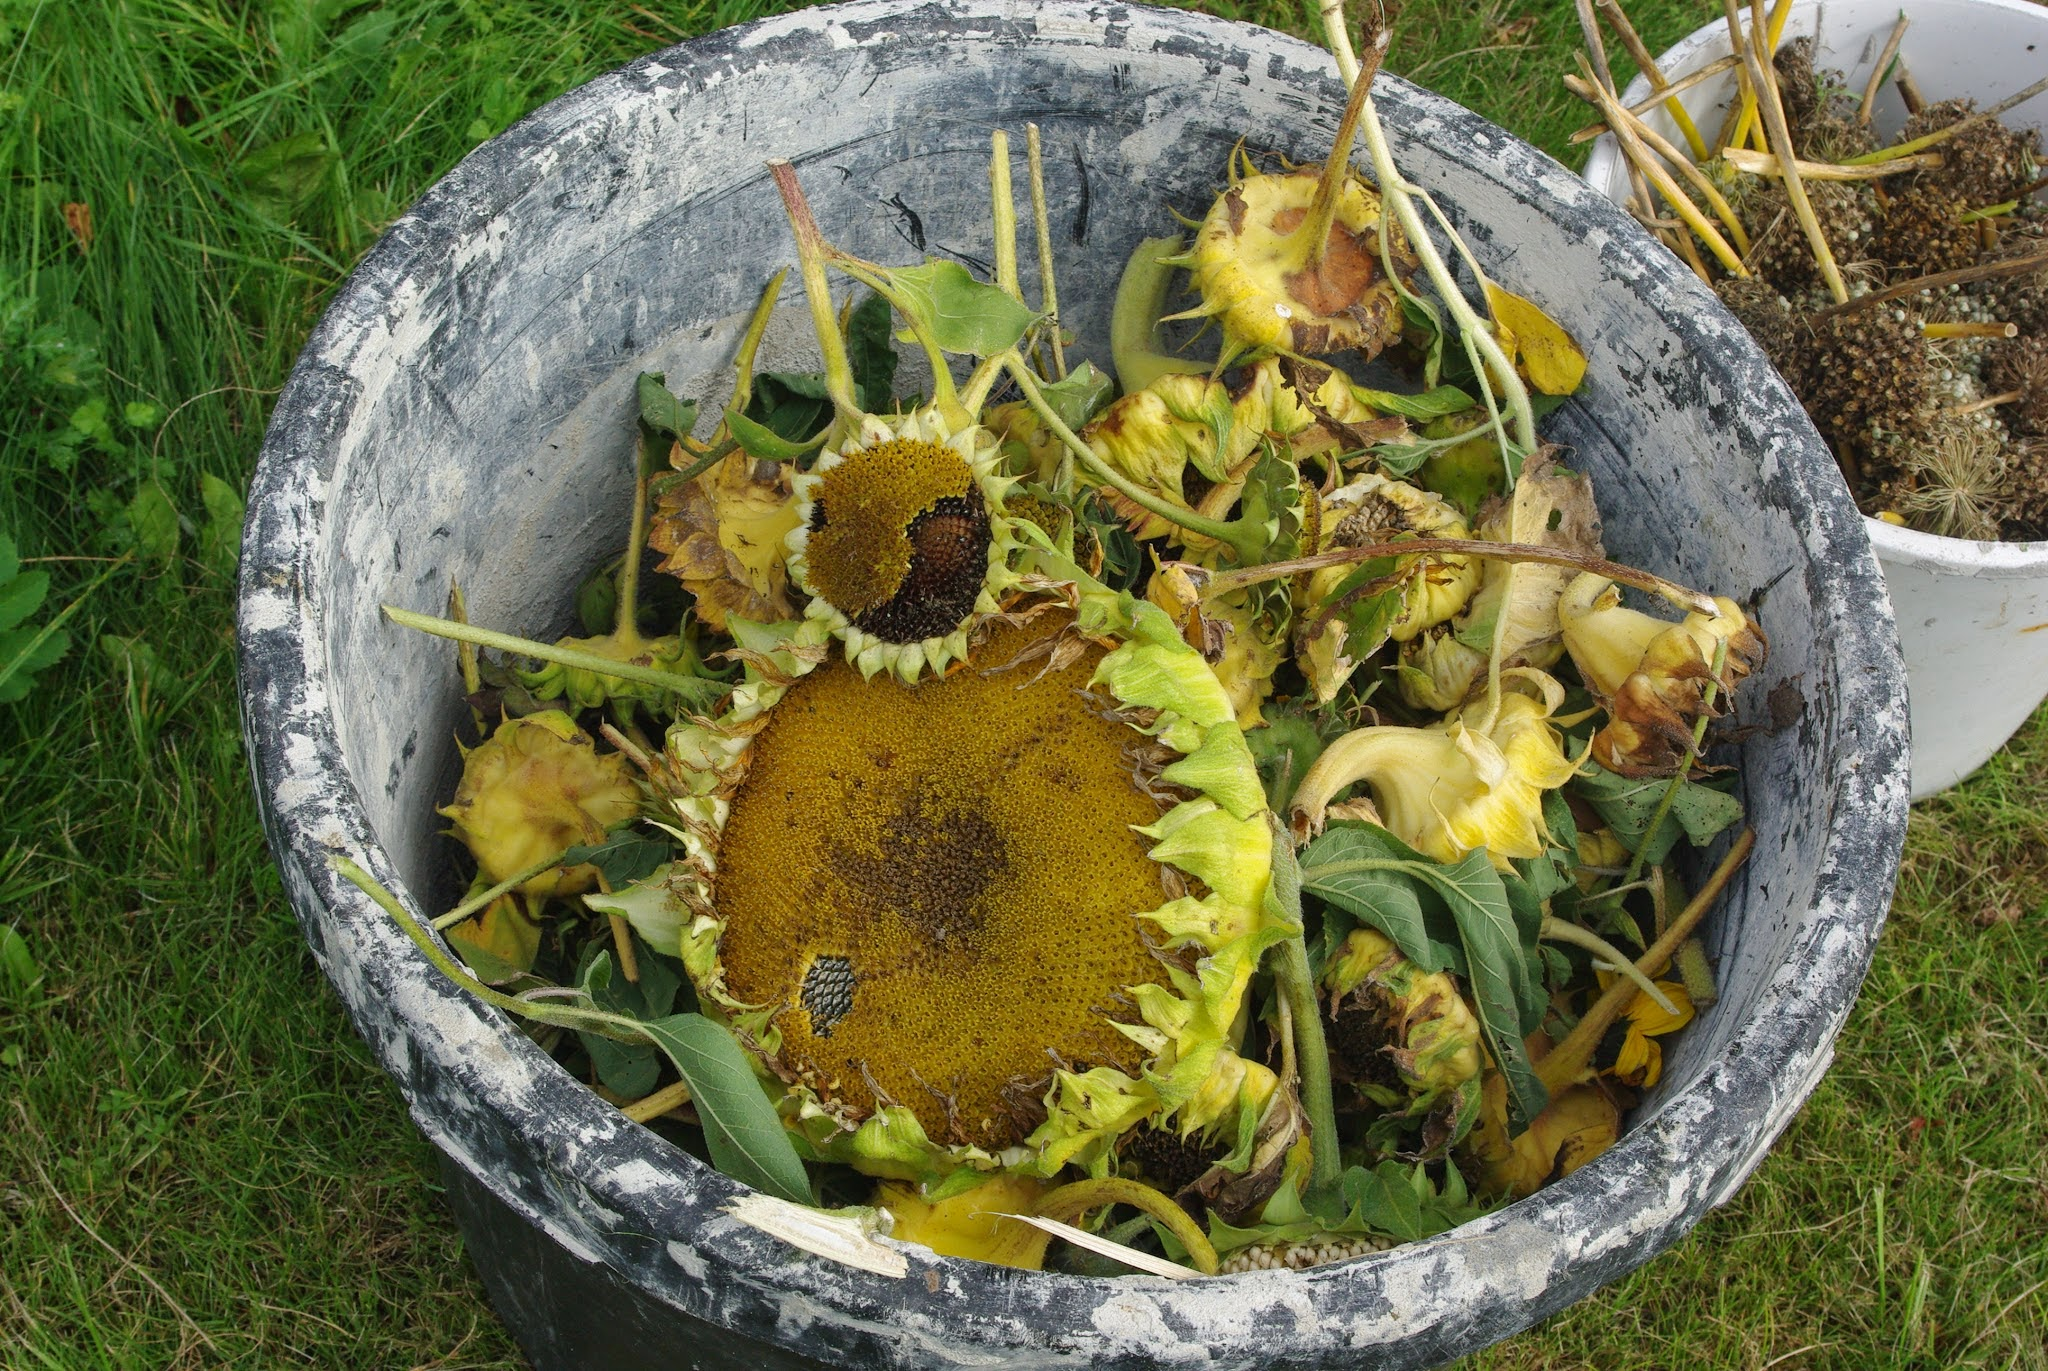 Some sunflowers we collected for seed in Denmark.